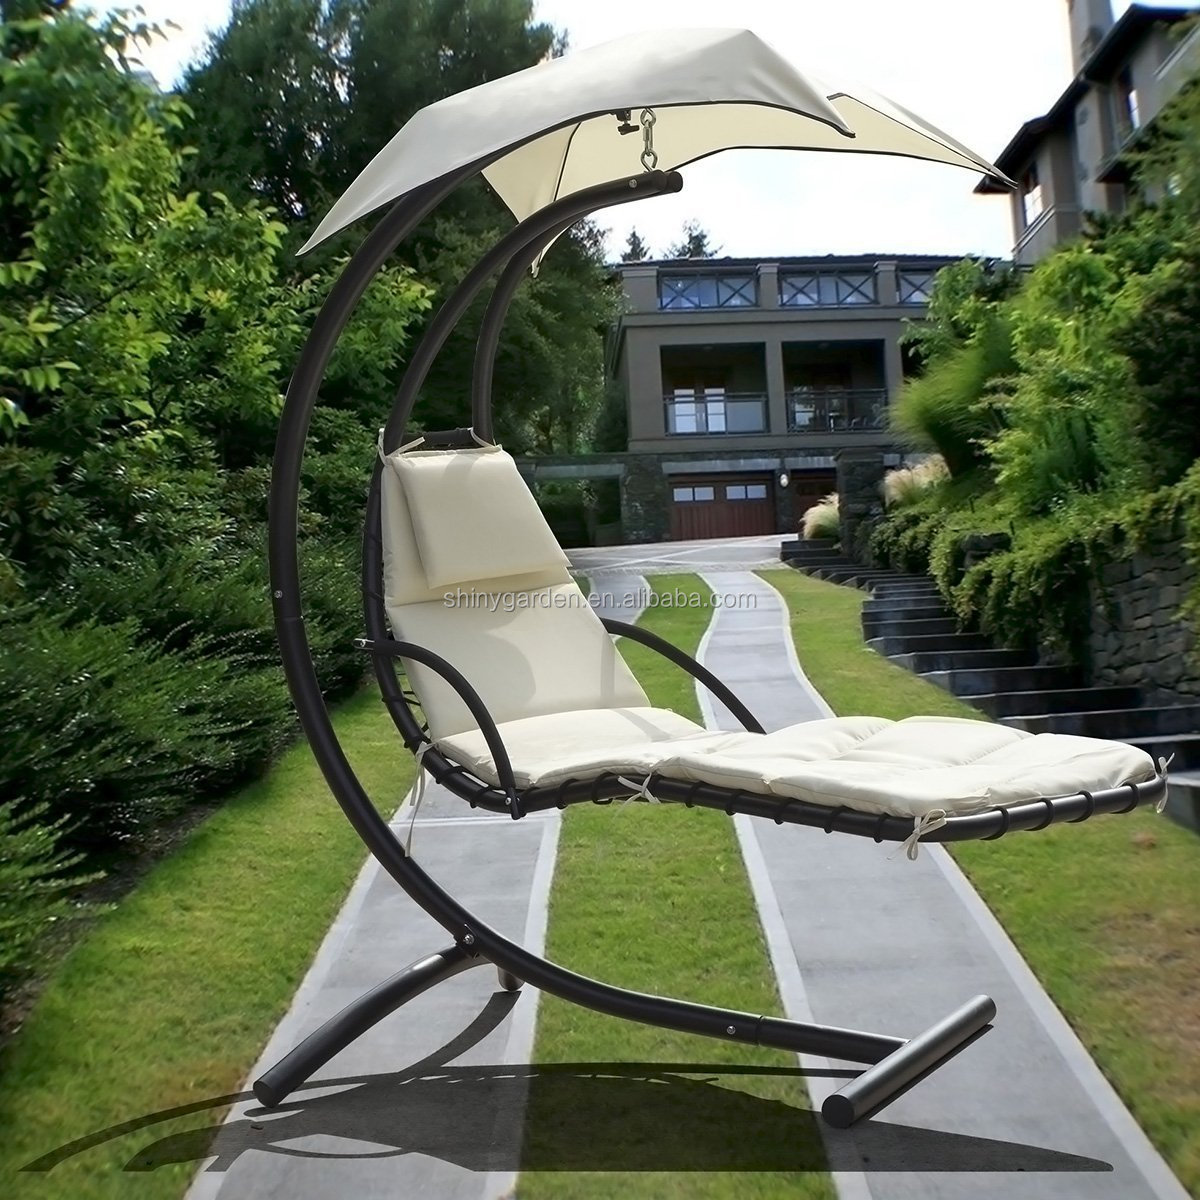 Hanging Helicopter Sun Lounger Chair Dream Chair Swing ... on Hanging Helicopter Dream Lounger Chair id=83568